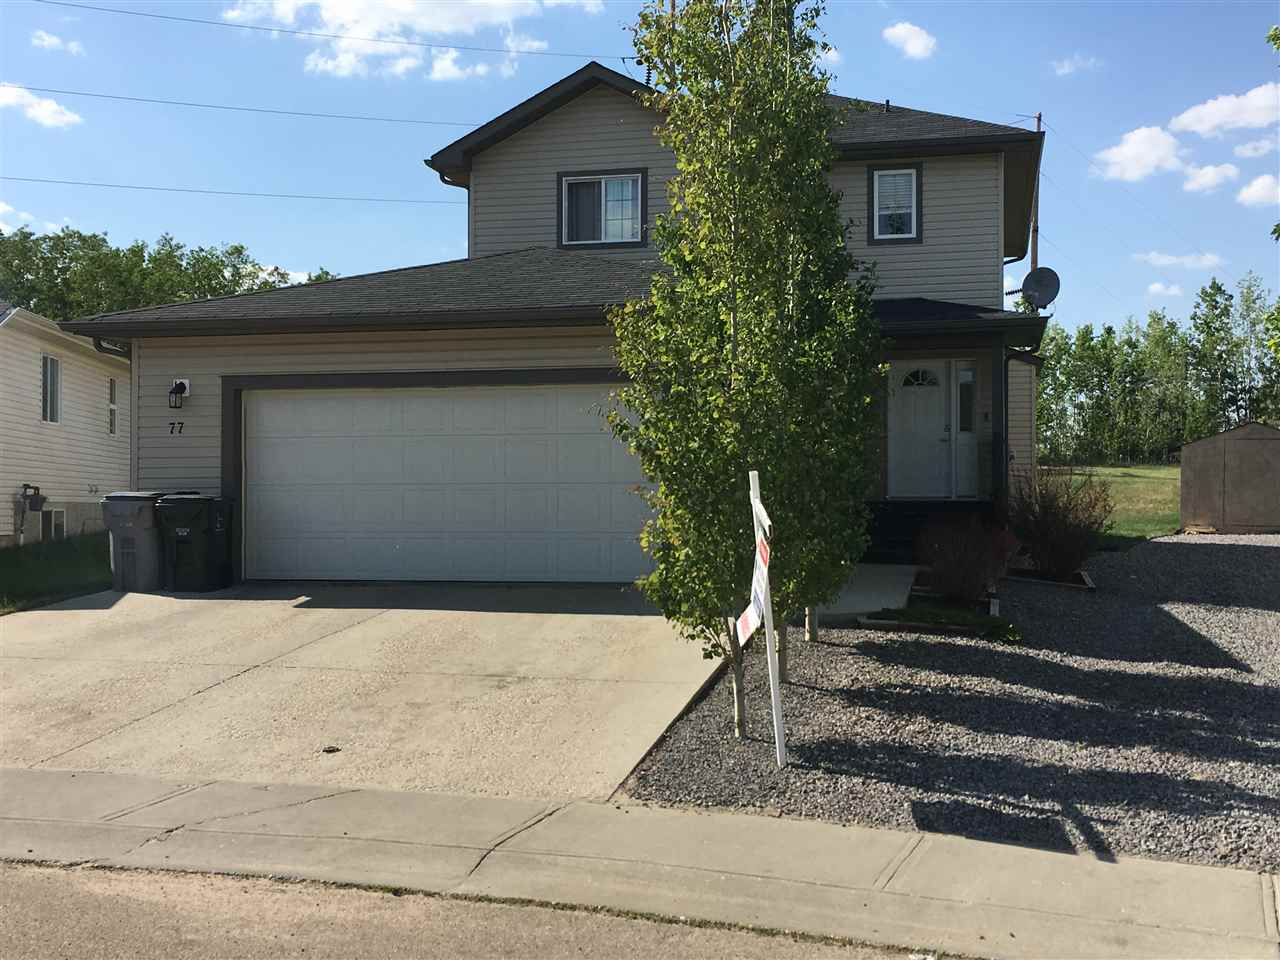 Main Photo: 77 Grayridge Crescent: Stony Plain House for sale : MLS®# E4094385